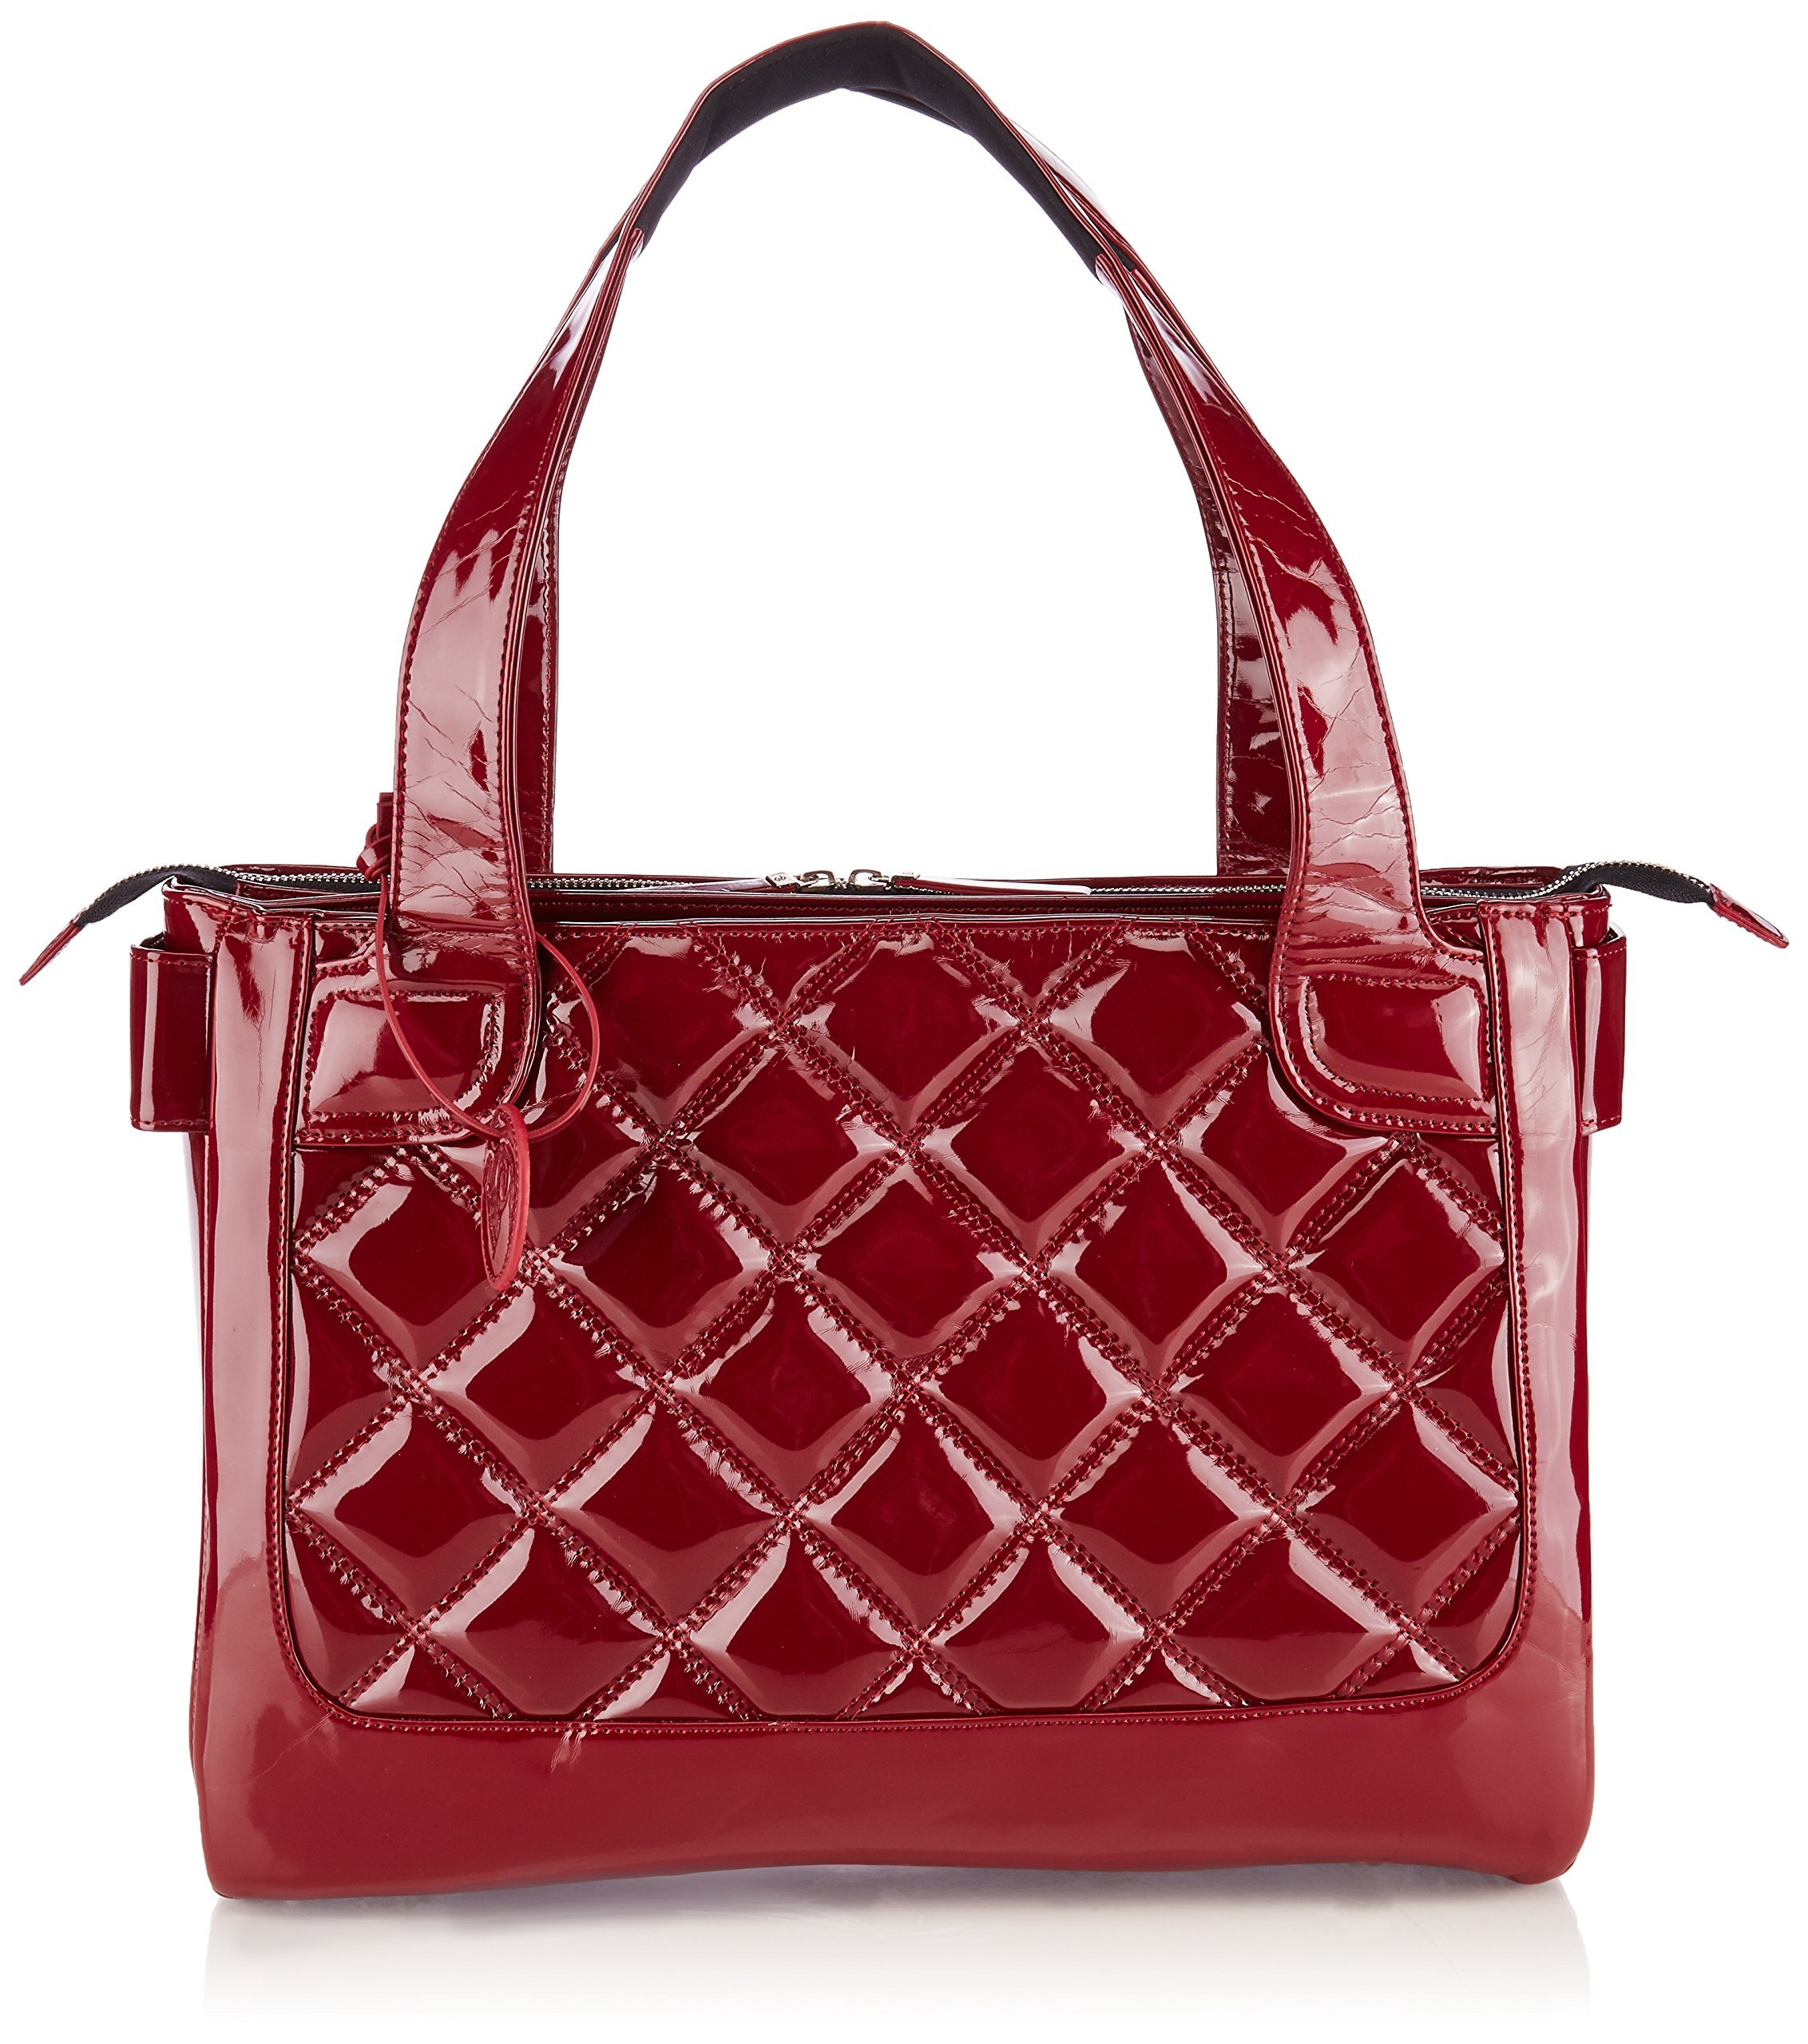 Fabrique 183248000893 WIB Women's Vanity Scarlet Notebook Tote with Black Lining, Fits Upto 16.1 Computer